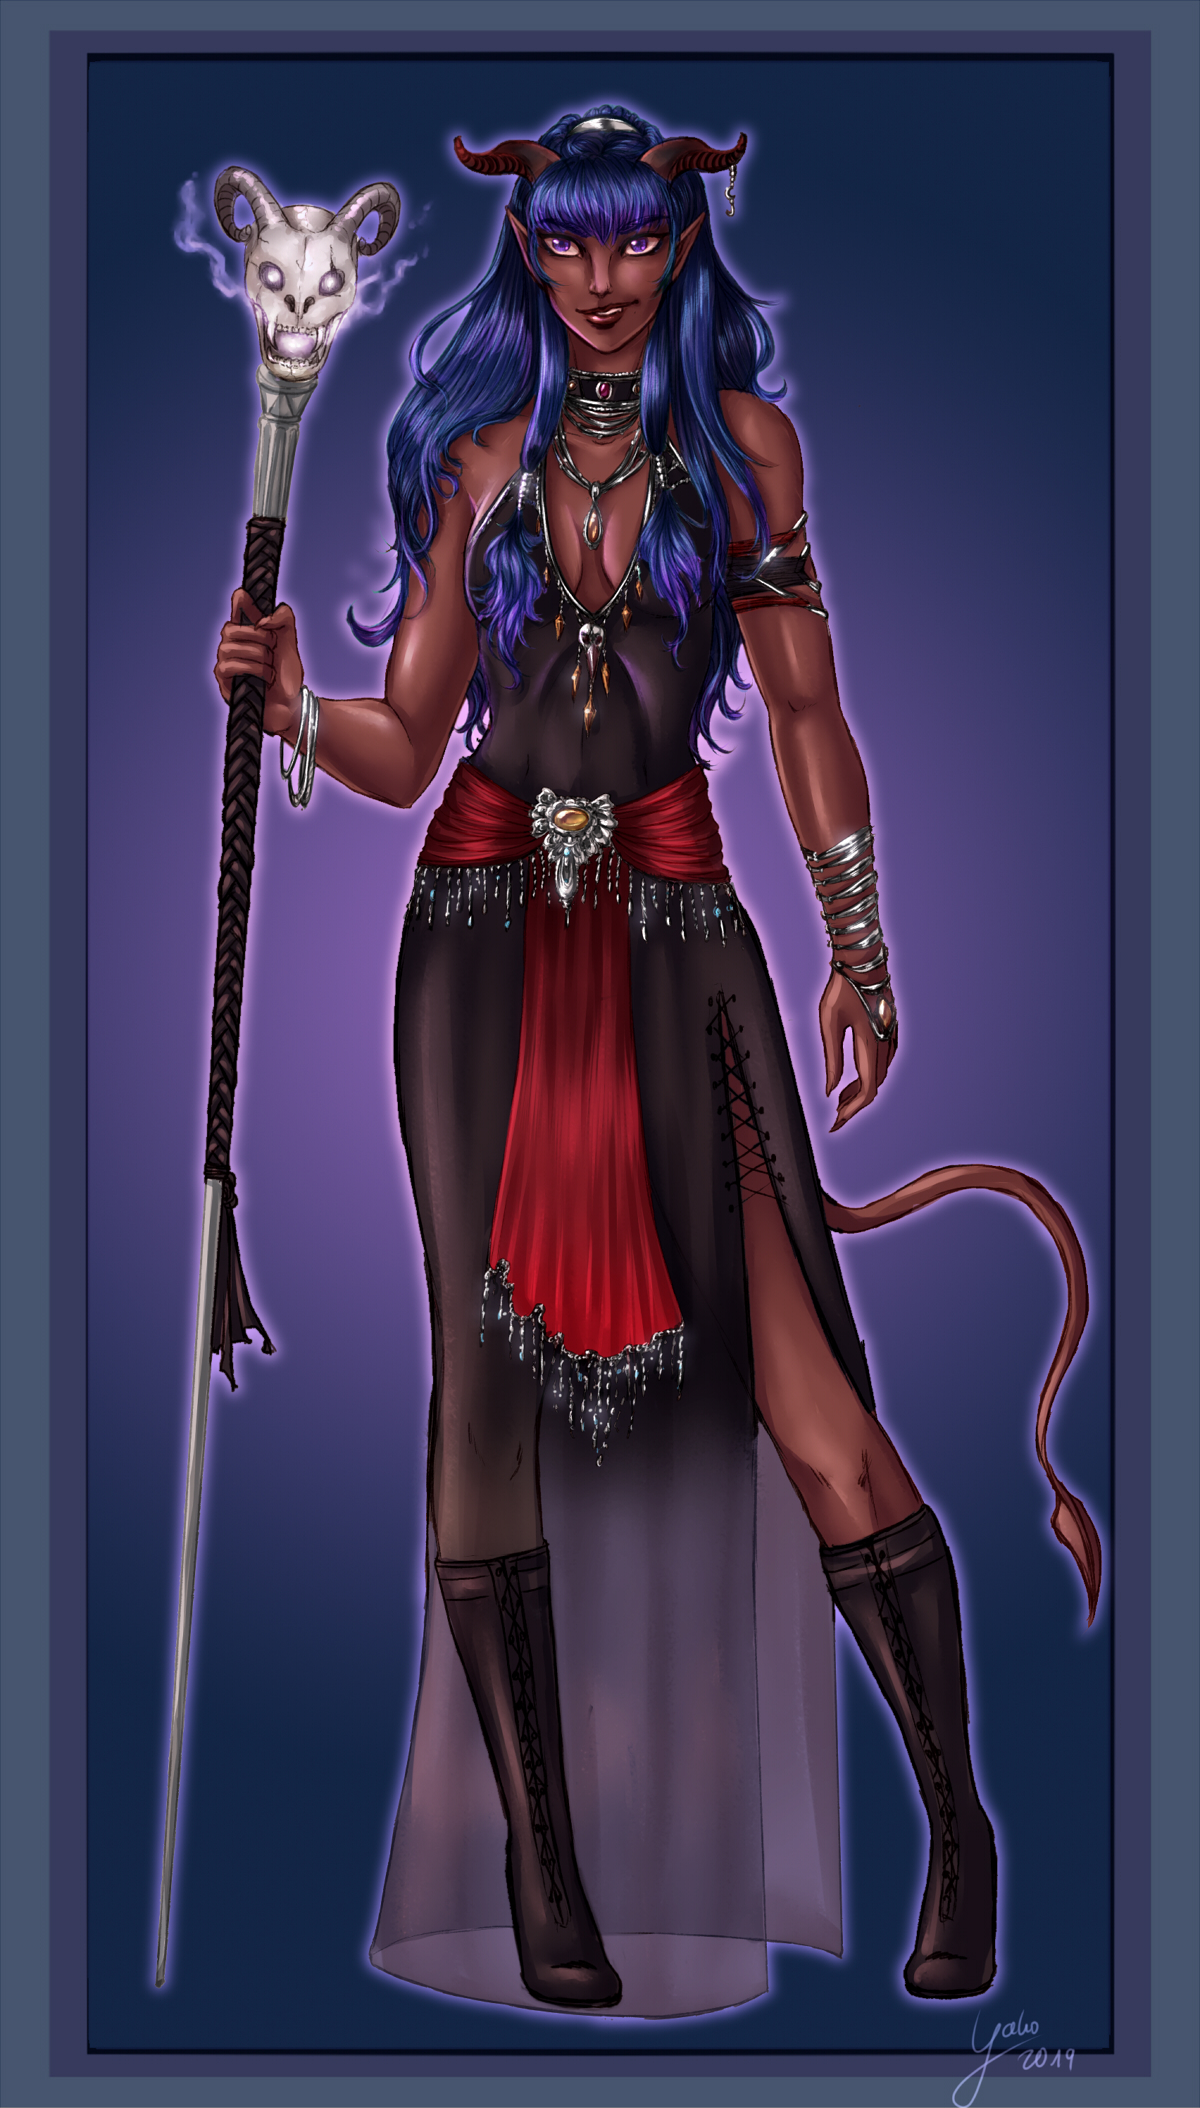 Tiefling Warlock By Yako On Deviantart In dungeons & dragons, warlocks are unique casters that allow for a lot of customization and options for different builds. tiefling warlock by yako on deviantart